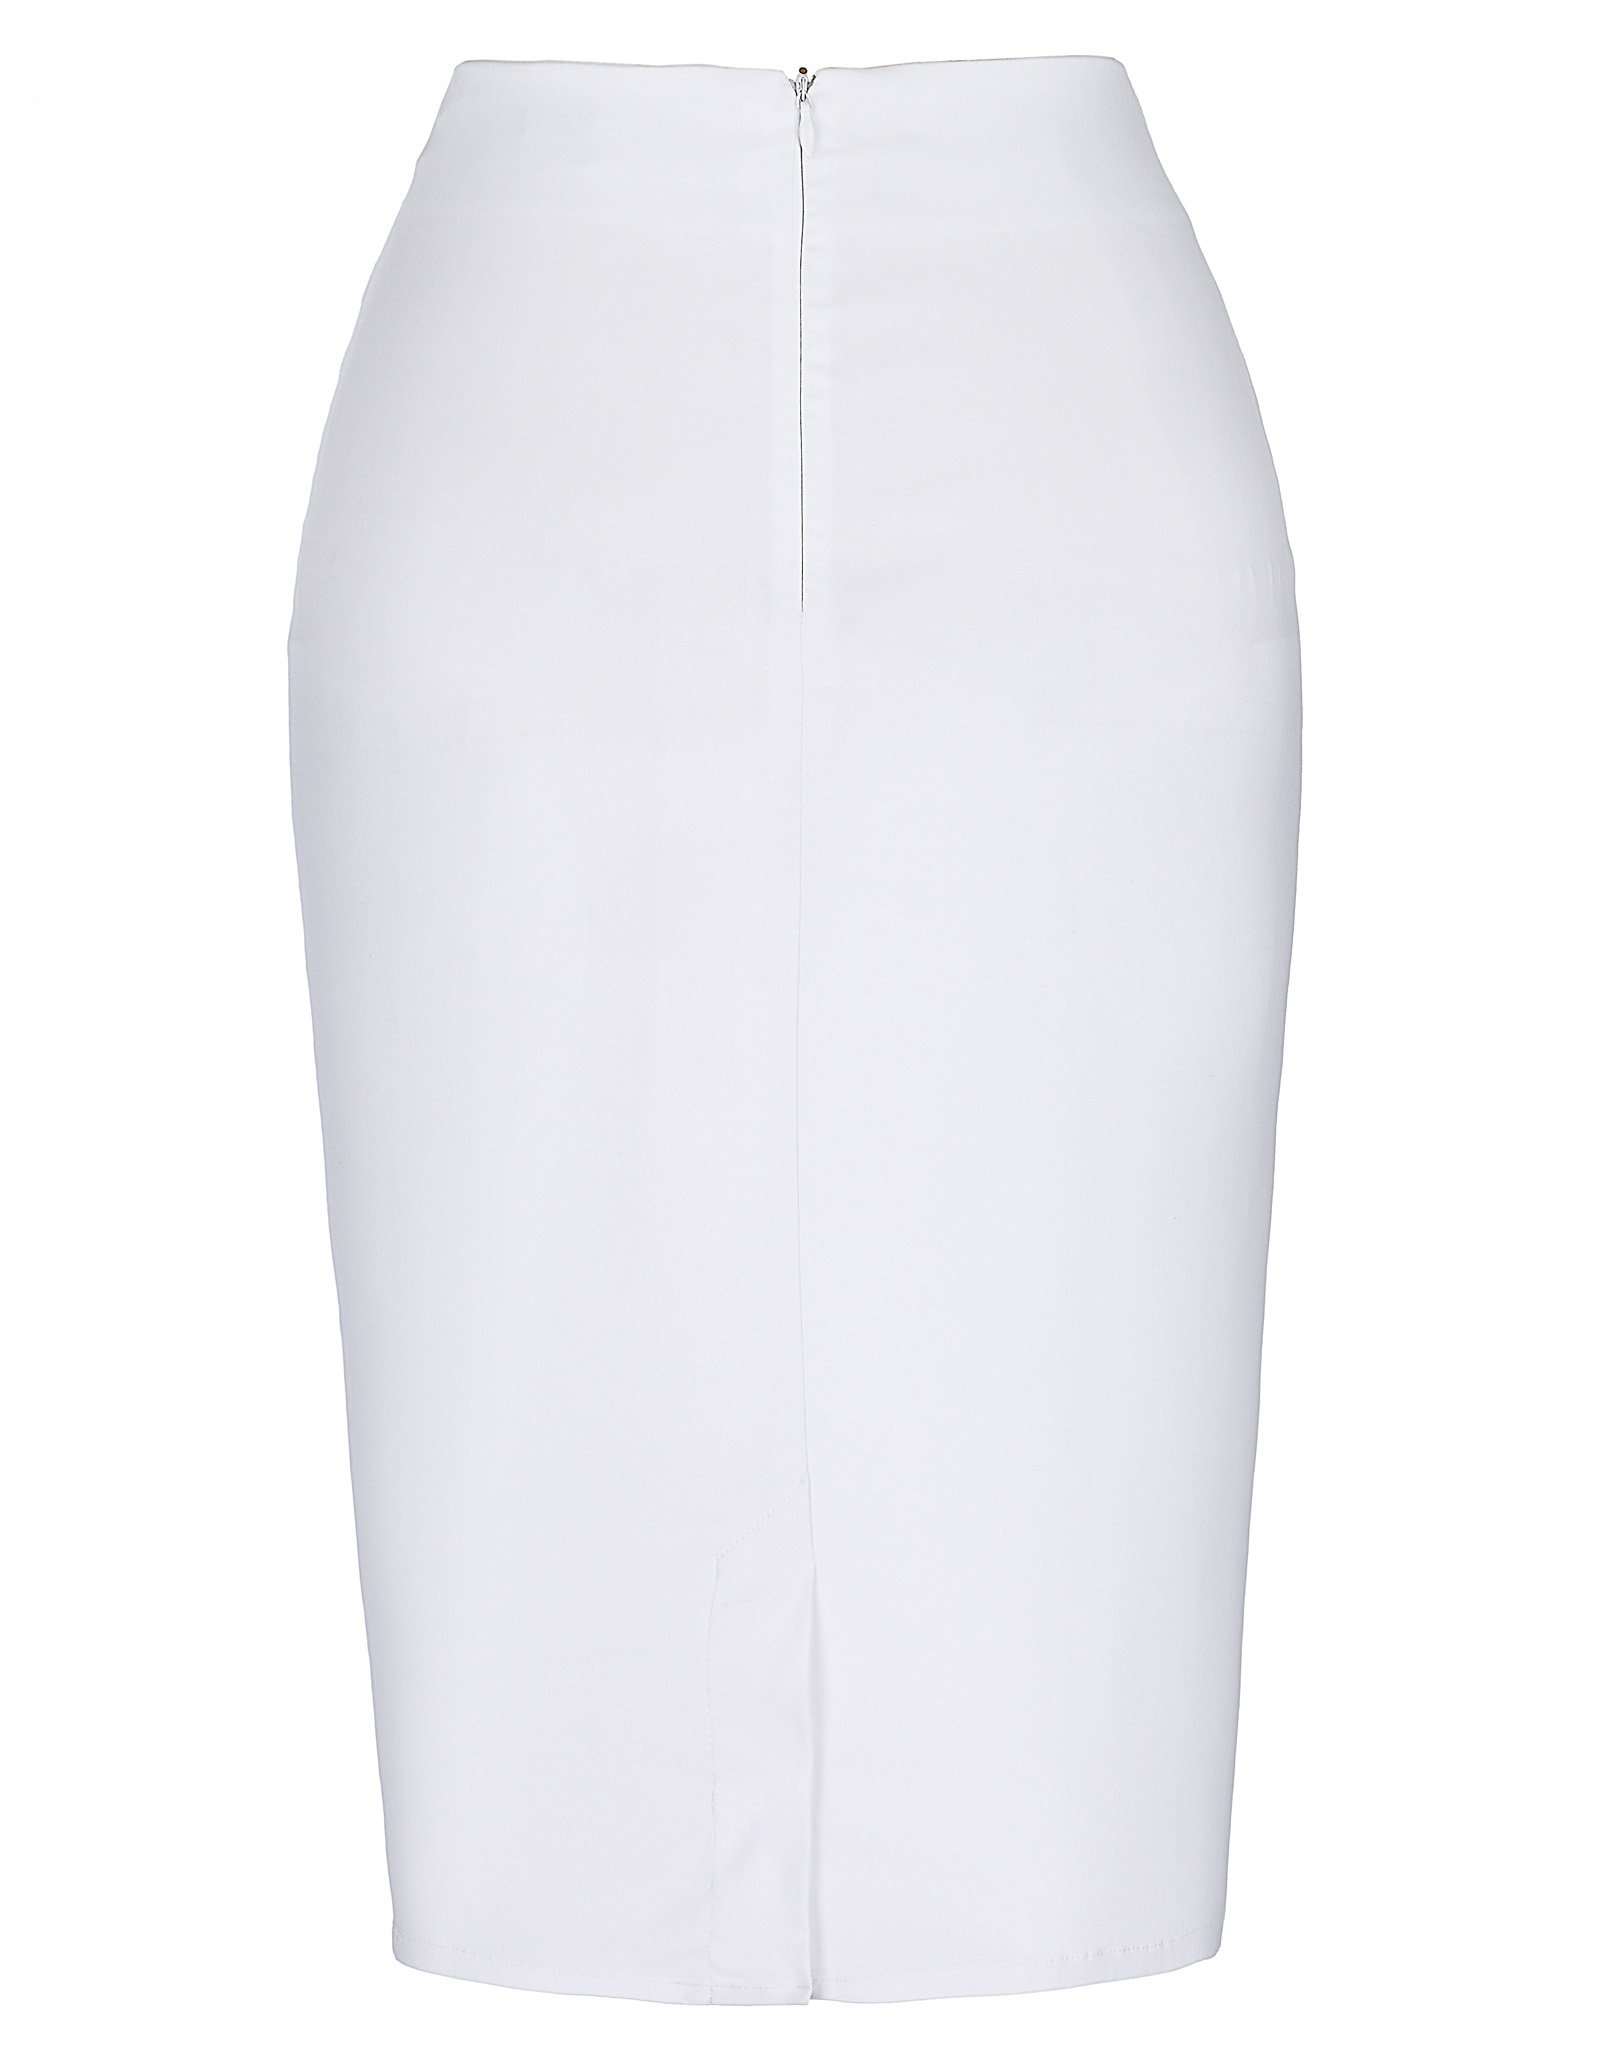 Kate Kasin Retro Elegant Hips Wrapped Knee Length Pencil Skirt M KK268-2